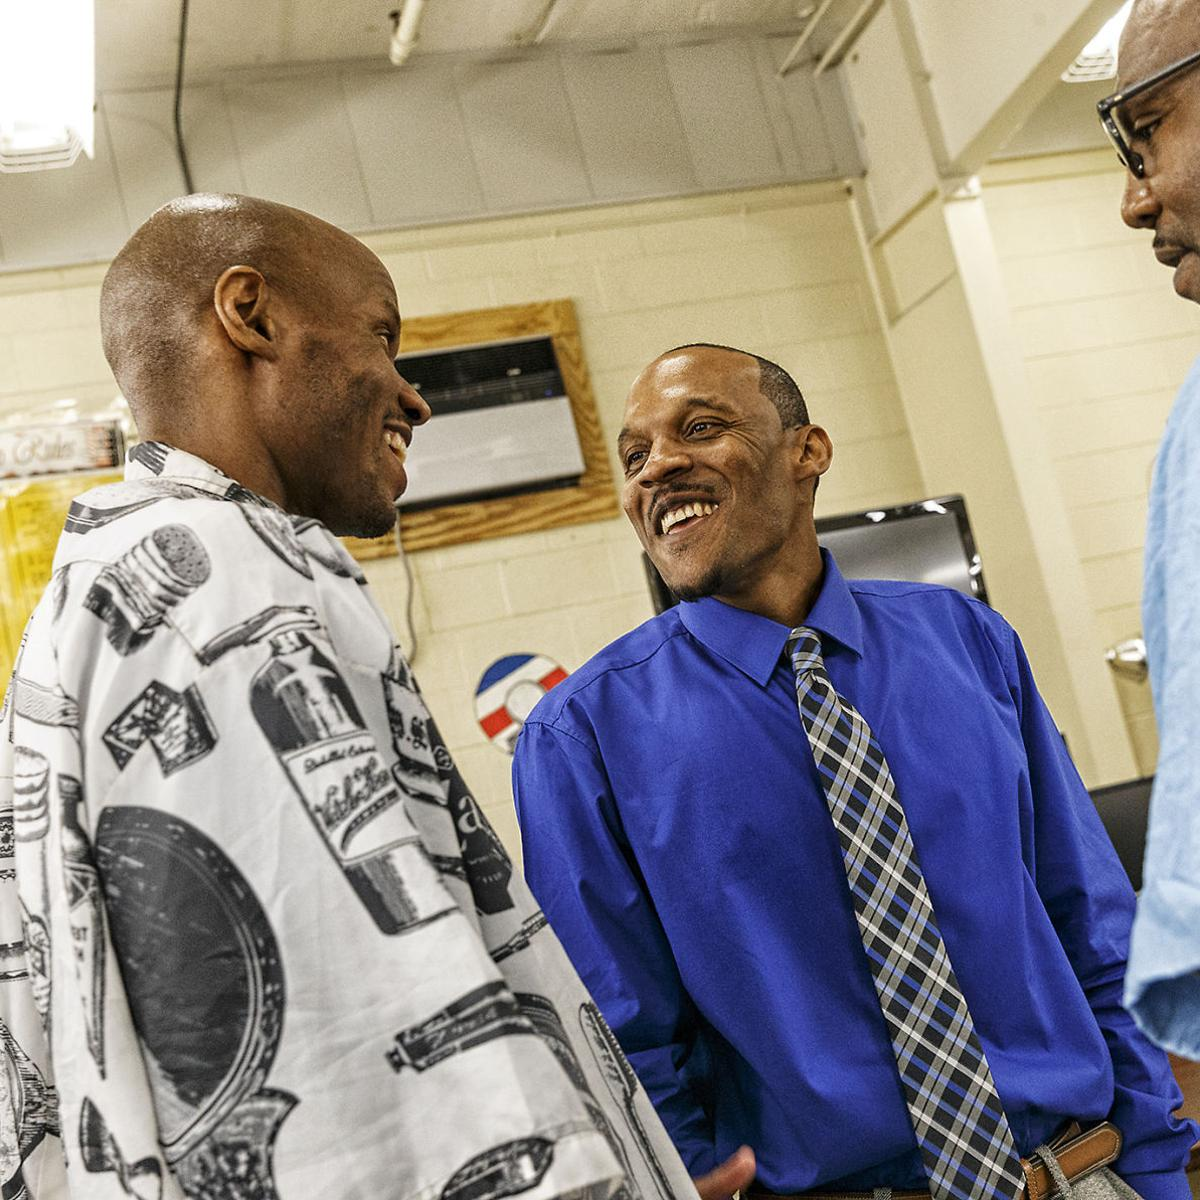 Barber program gives former inmates a chance on the outside